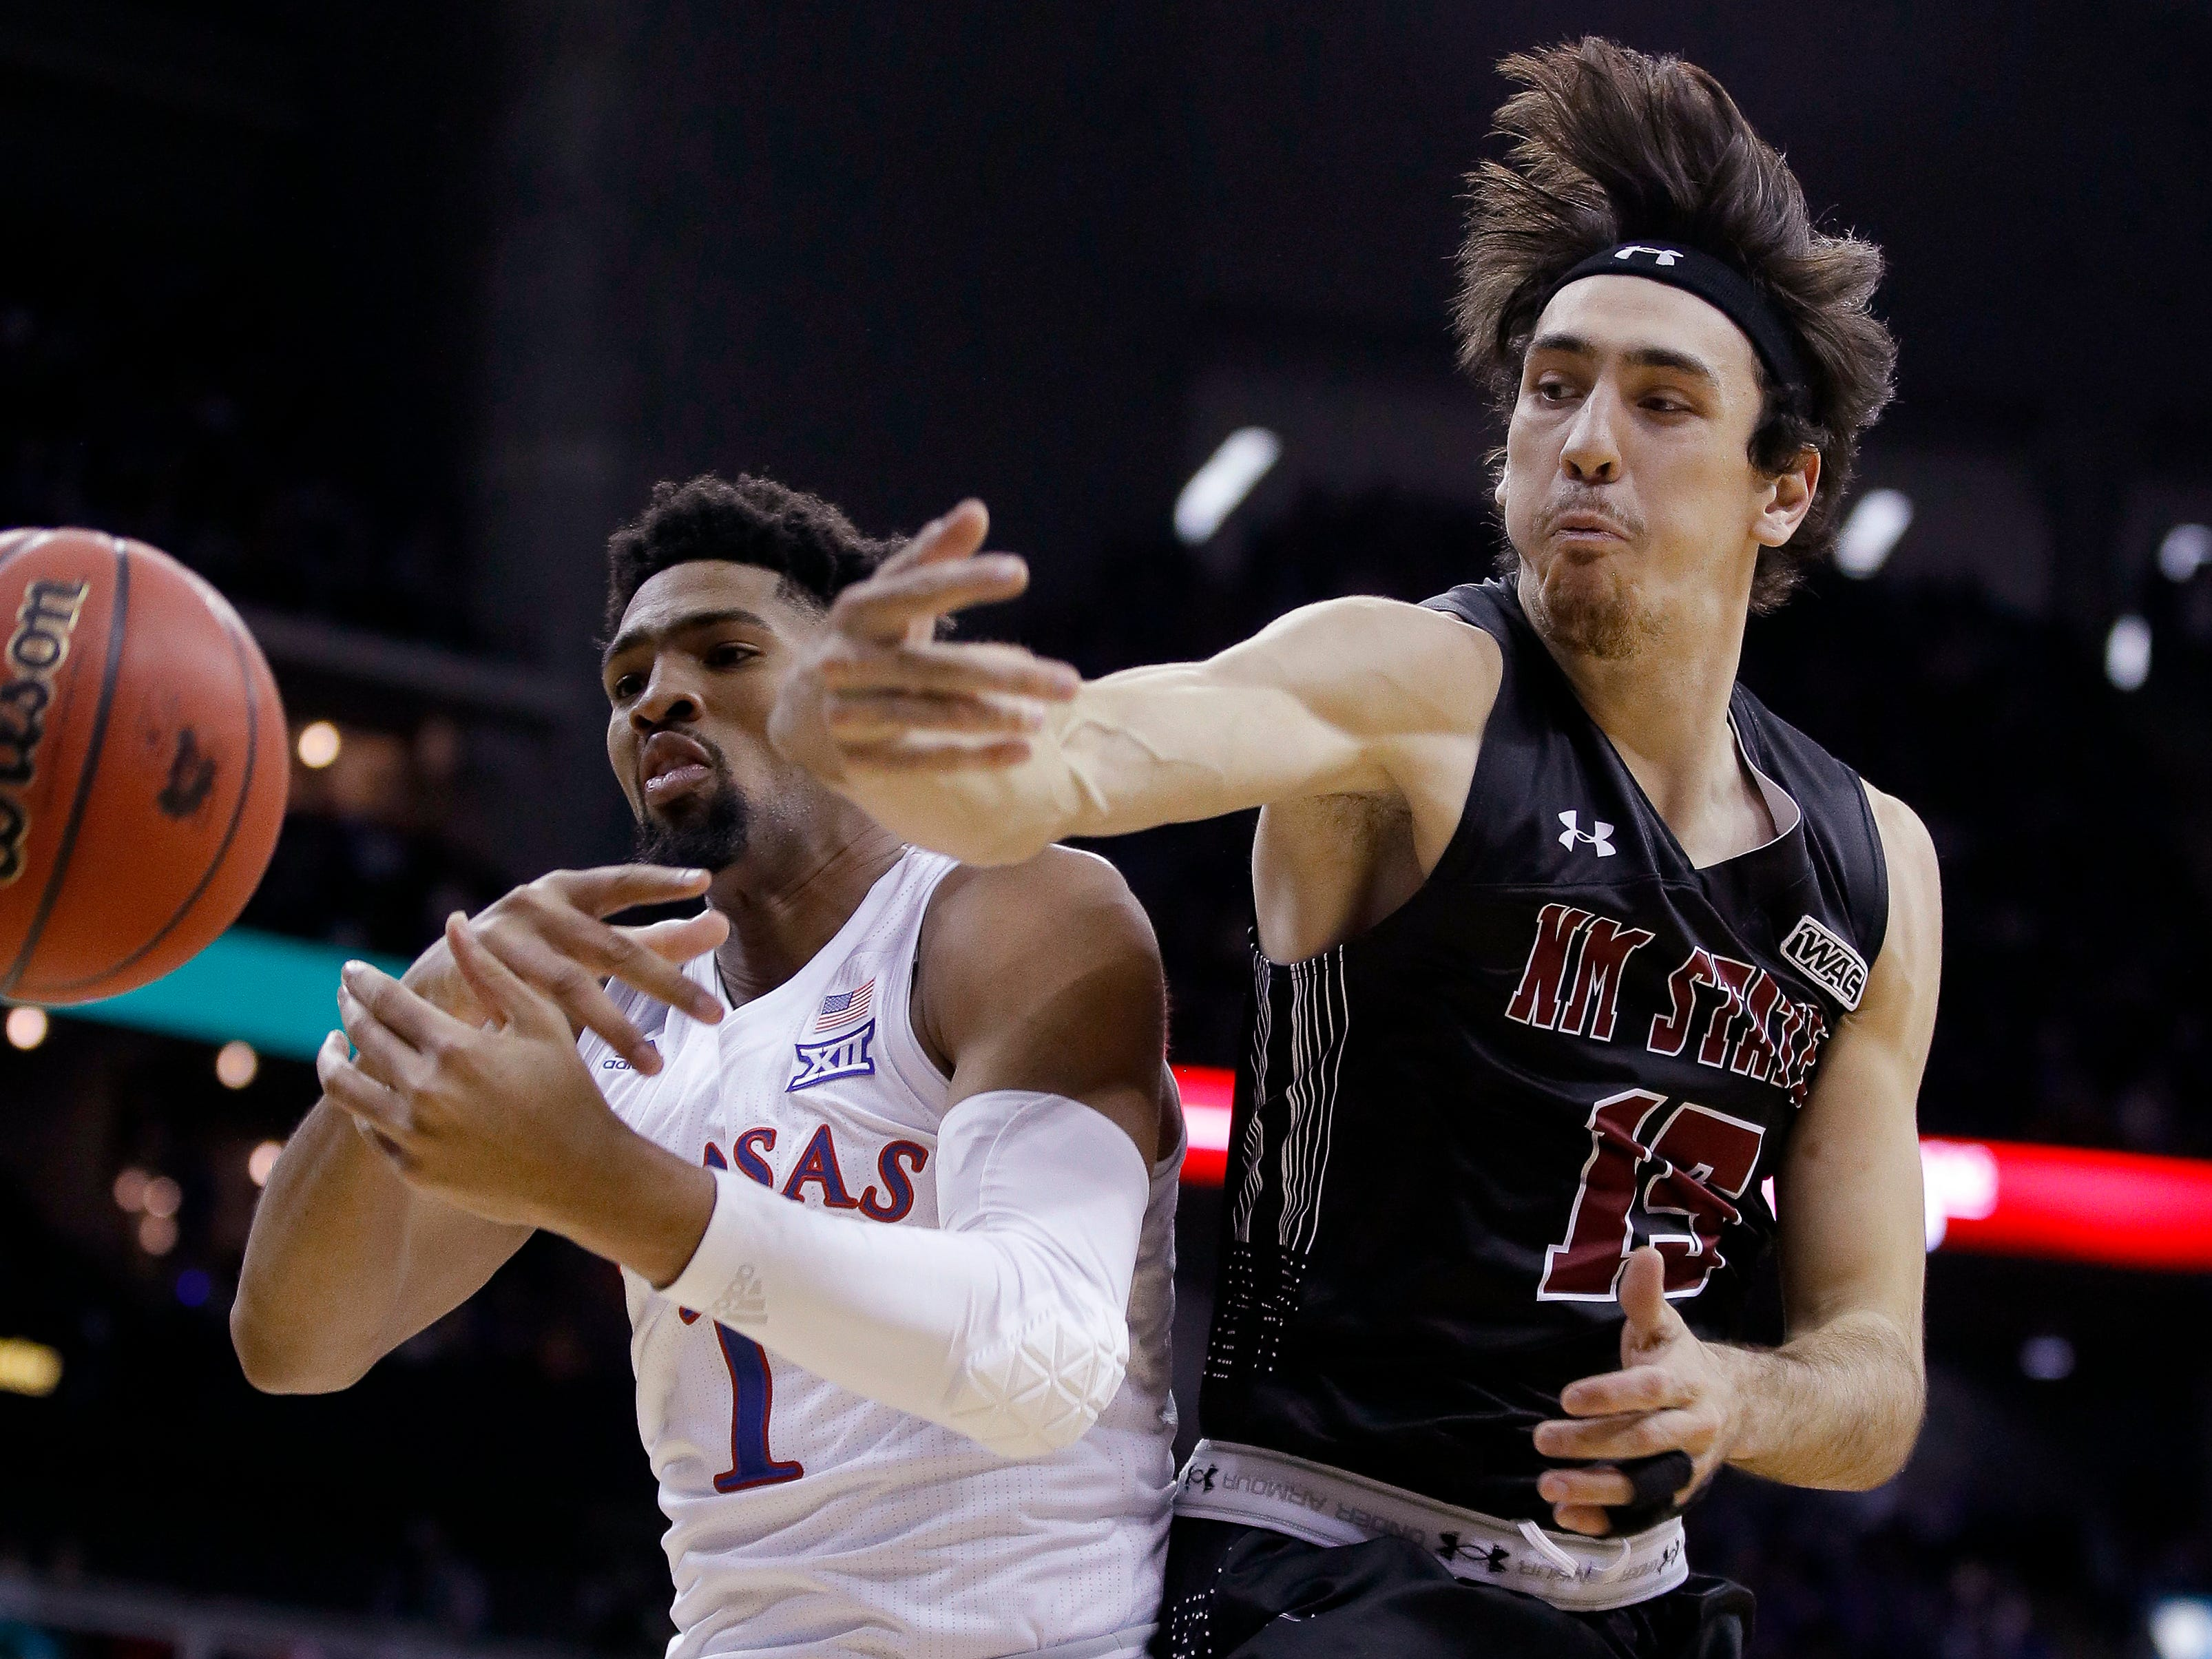 No. 2 Kansas comes back late to top New Mexico State